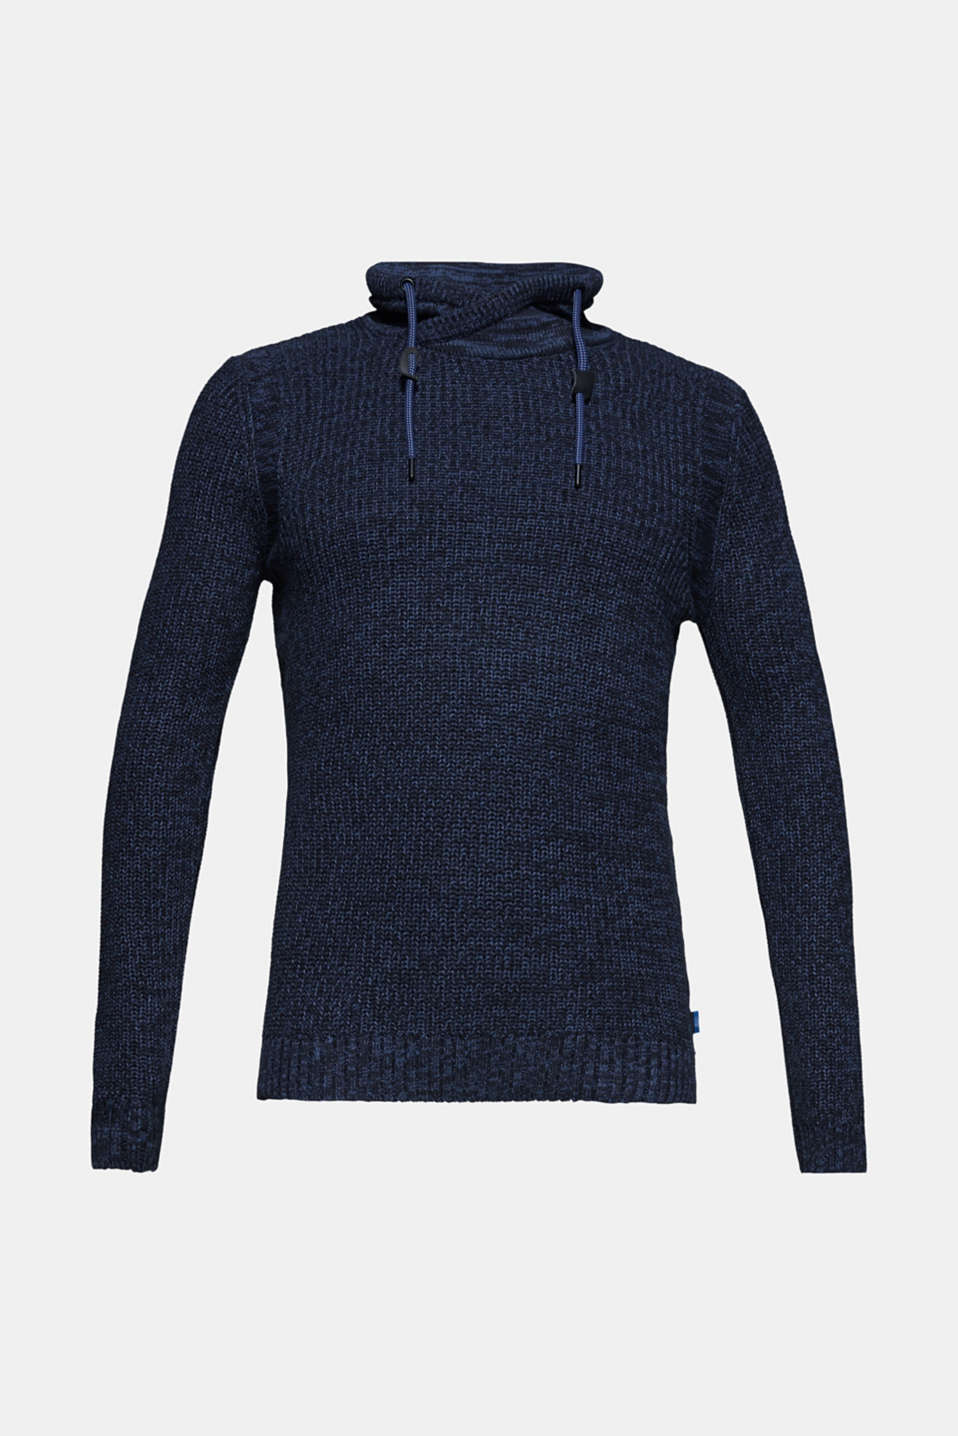 Knitted jumper with a drawstring collar, NAVY, detail image number 6